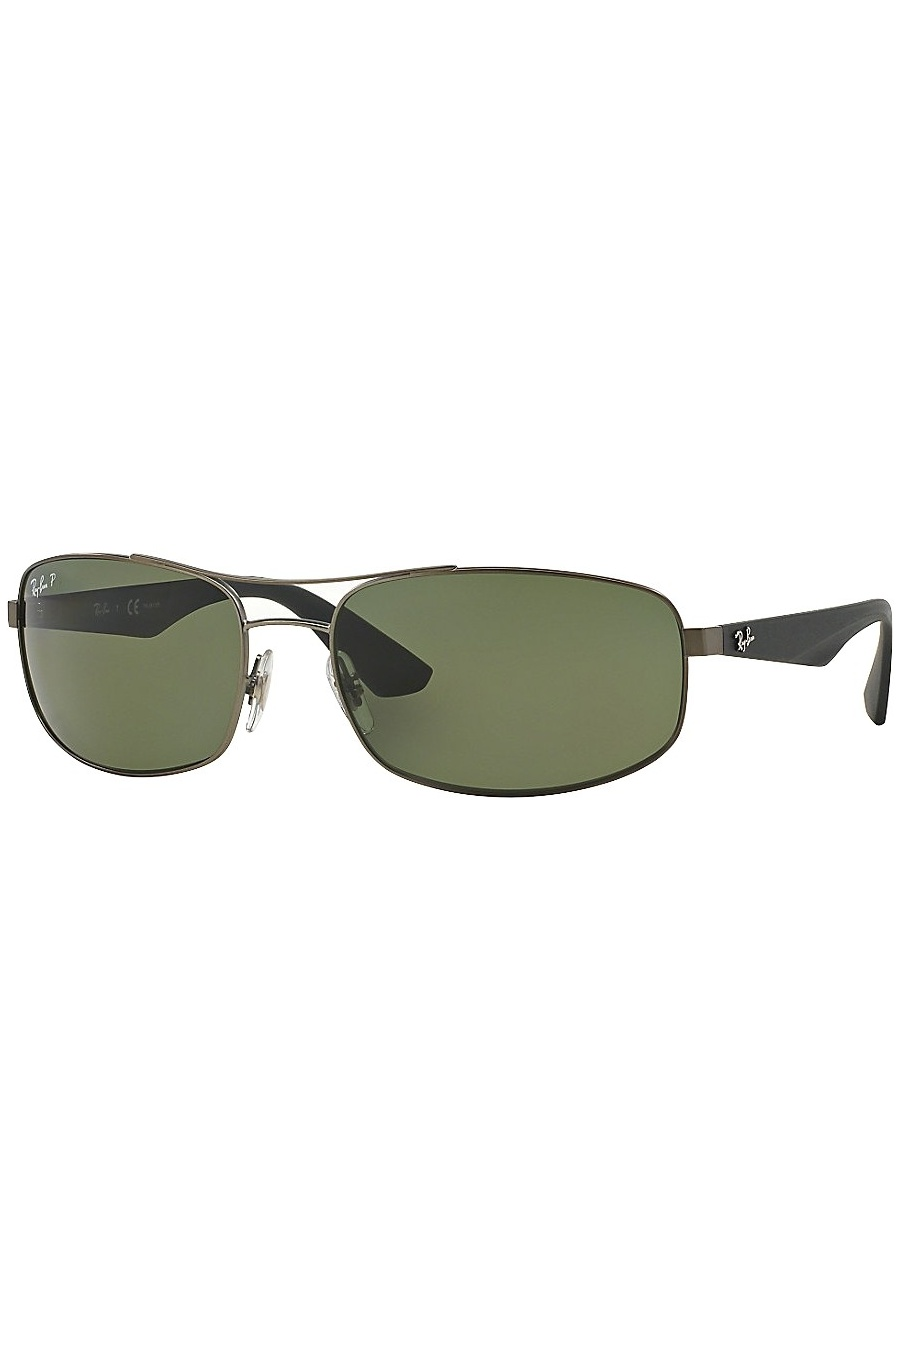 RAY-BAN RB3527 - 0299A 61 ACTIVE LIFESTYLE